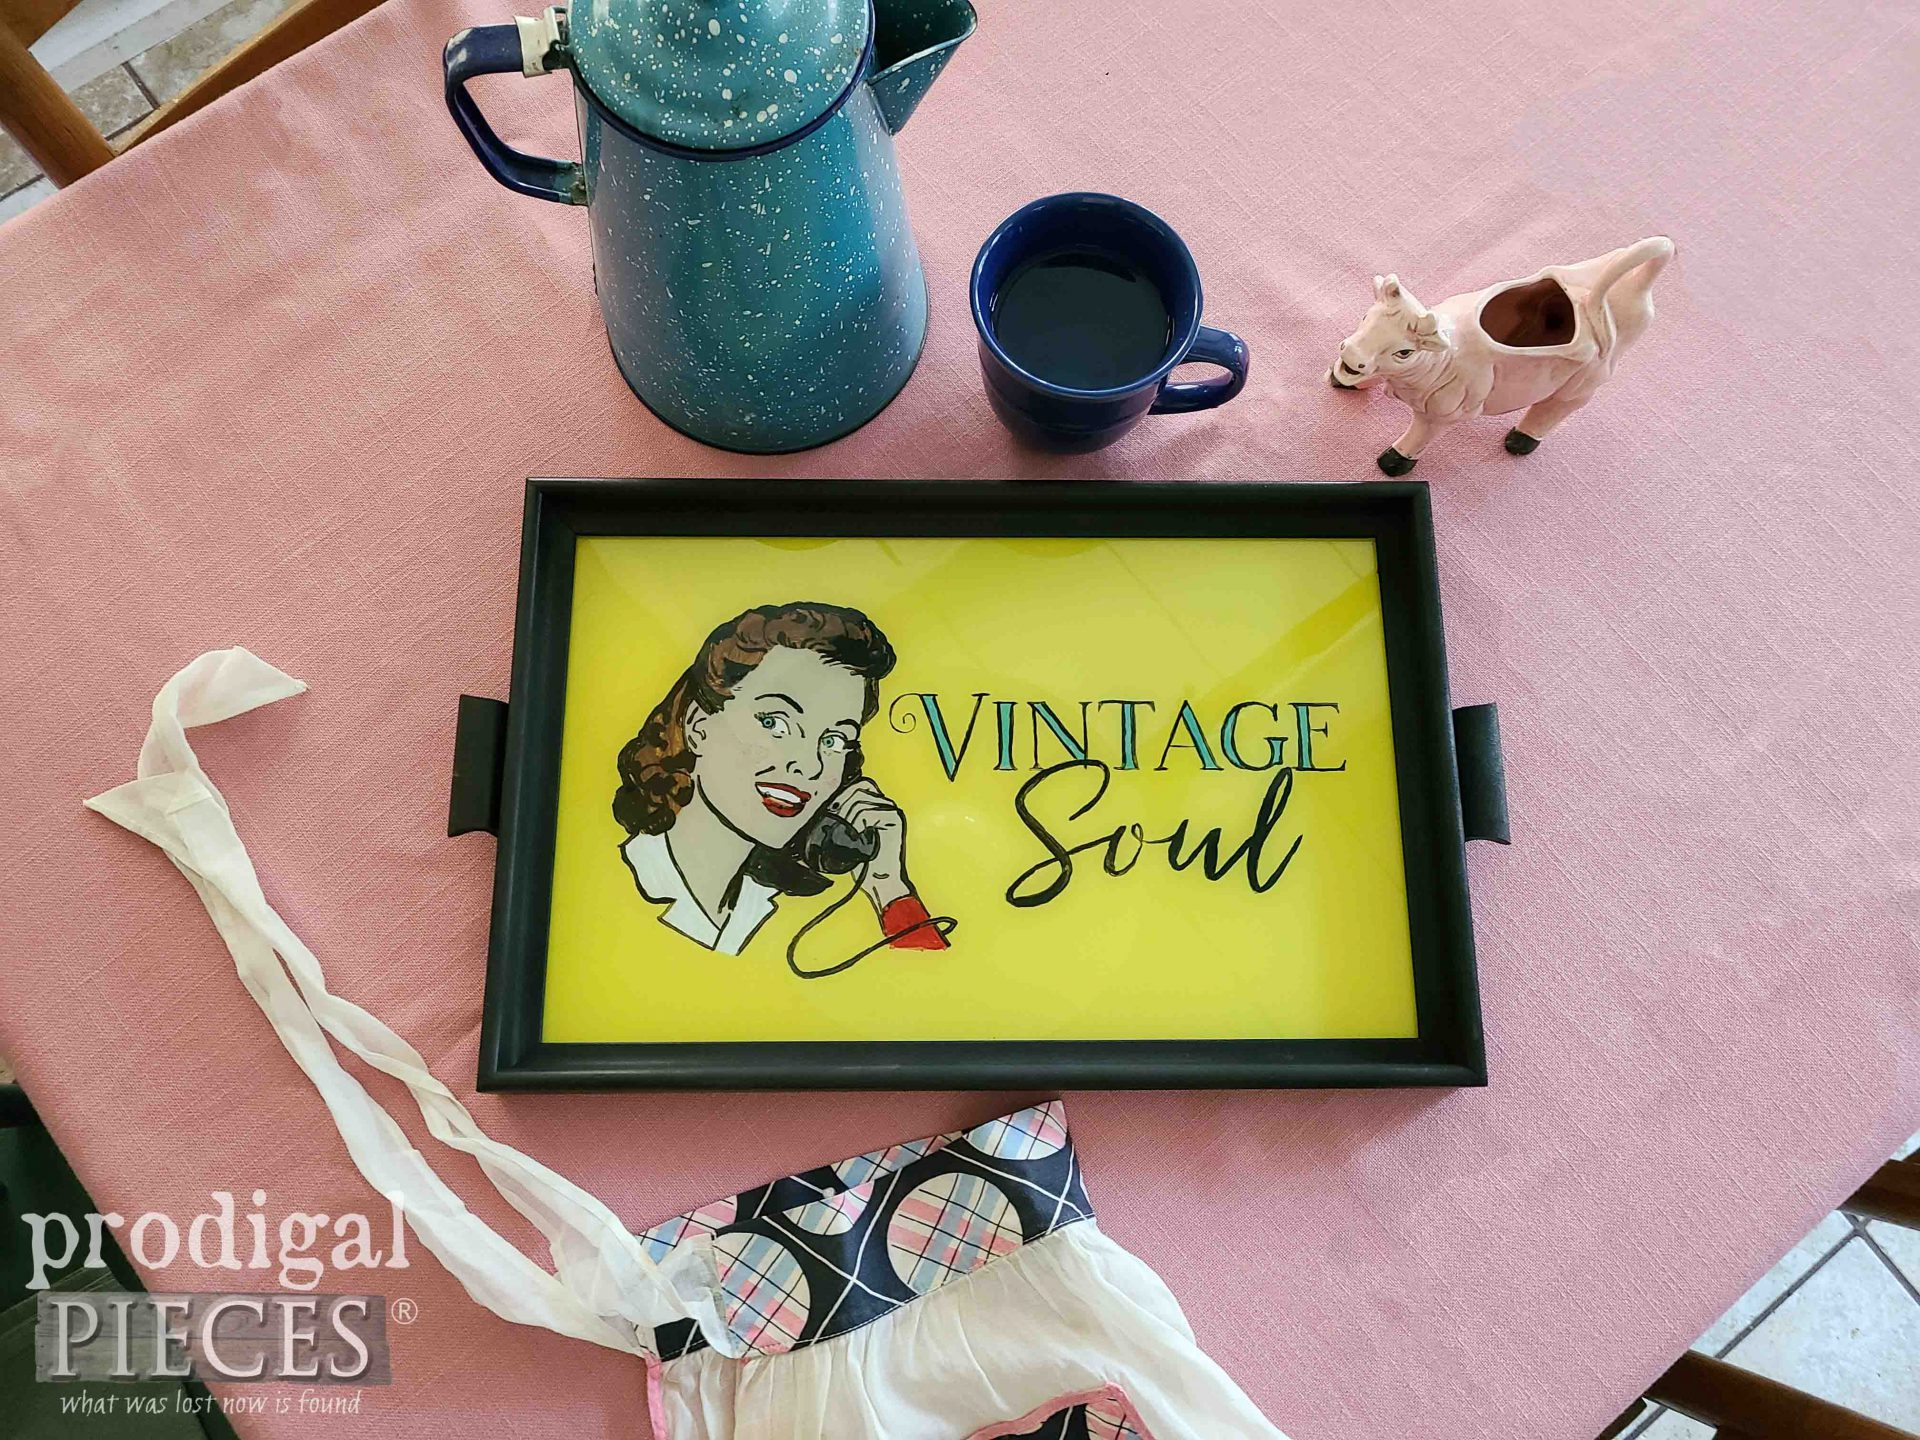 Hand-Painted Vintage Serving Tray with Reverse Painting Tutorial by Larissa of Prodigal Pieces | prodigalpieces.com #prodigalpieces #tutorial #diy #home #vintage